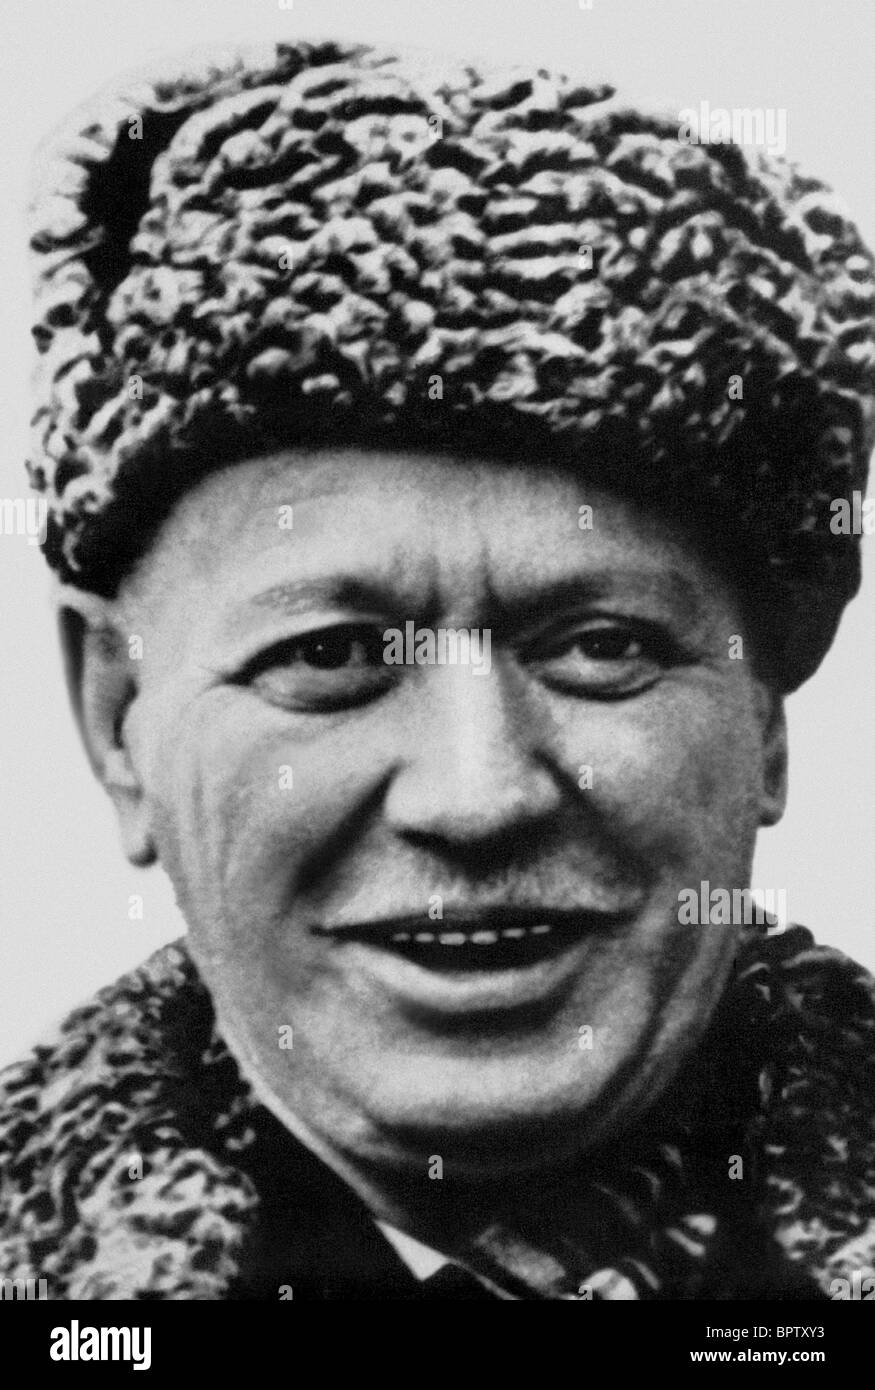 MIKHAIL SHOLOKHOV WRITER & NOBEL PRIZE FOR LITERATURE 1965 (1965) - Stock Image